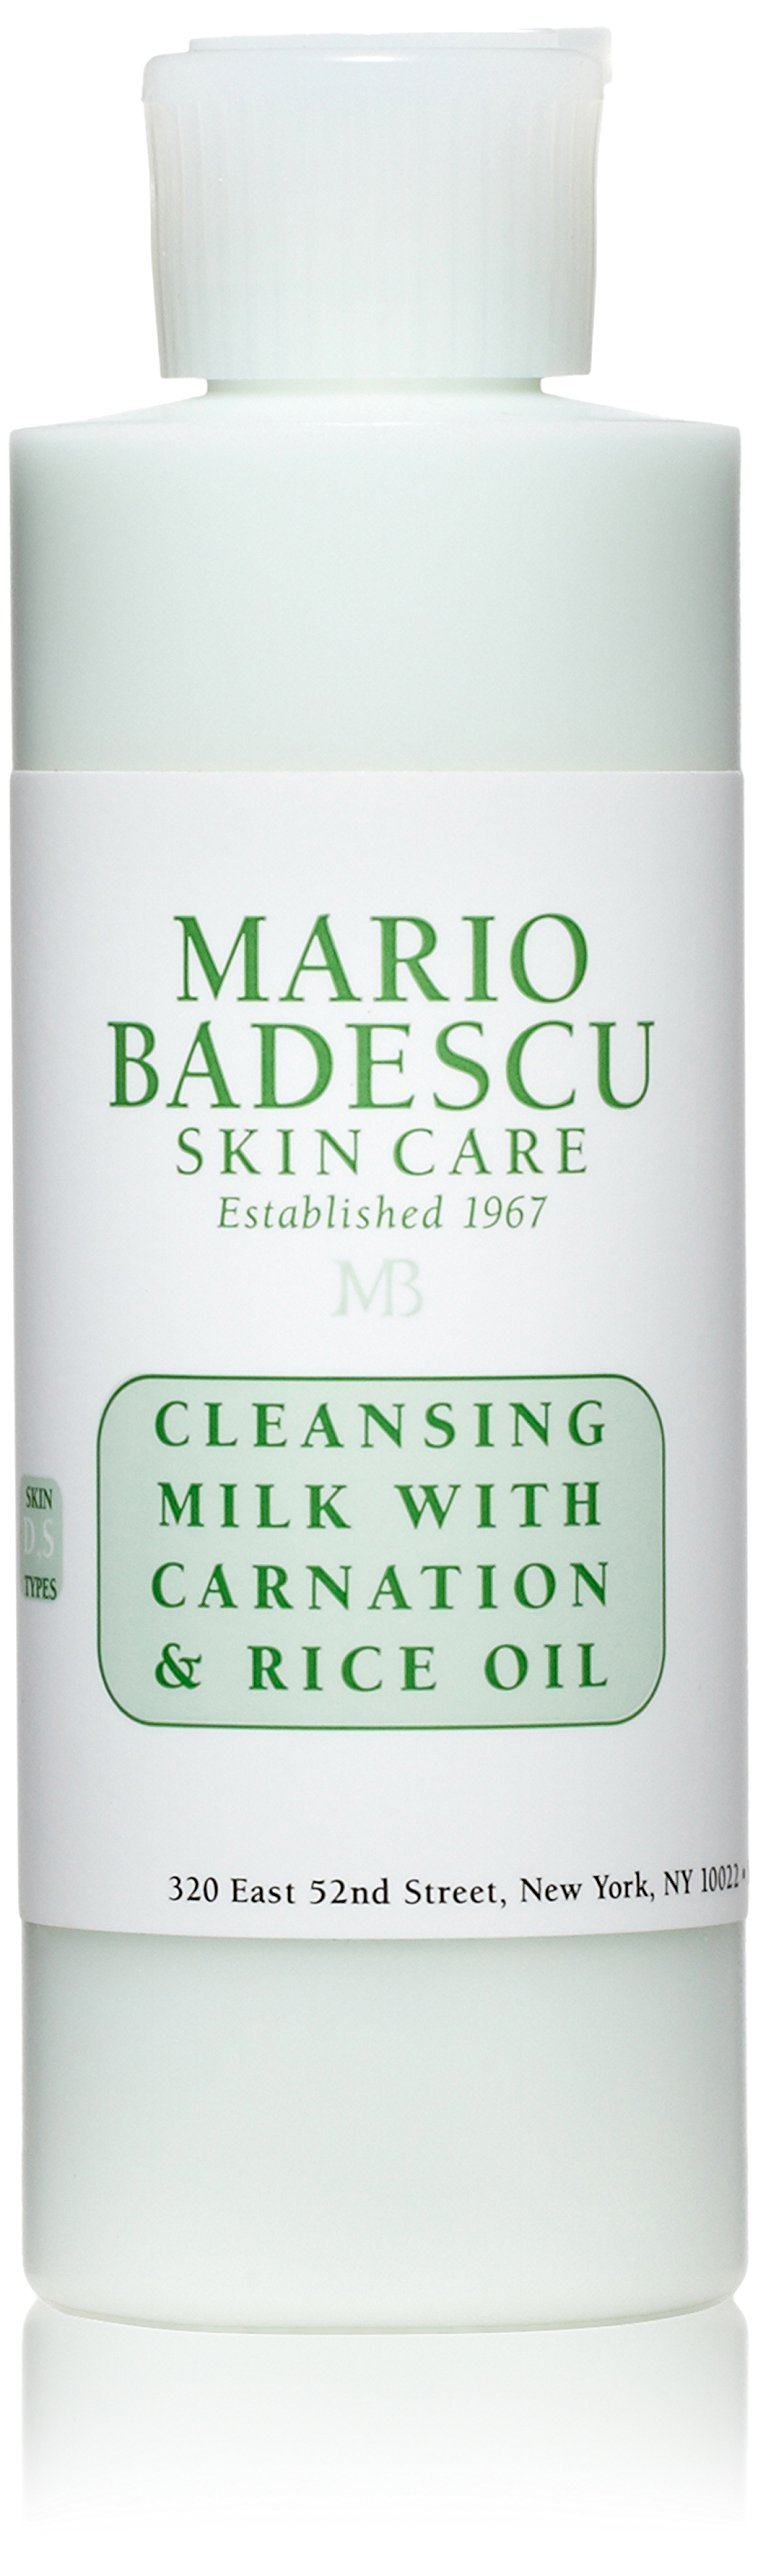 Mario Badescu Cleansing Milk with Carnation  Rice Oil